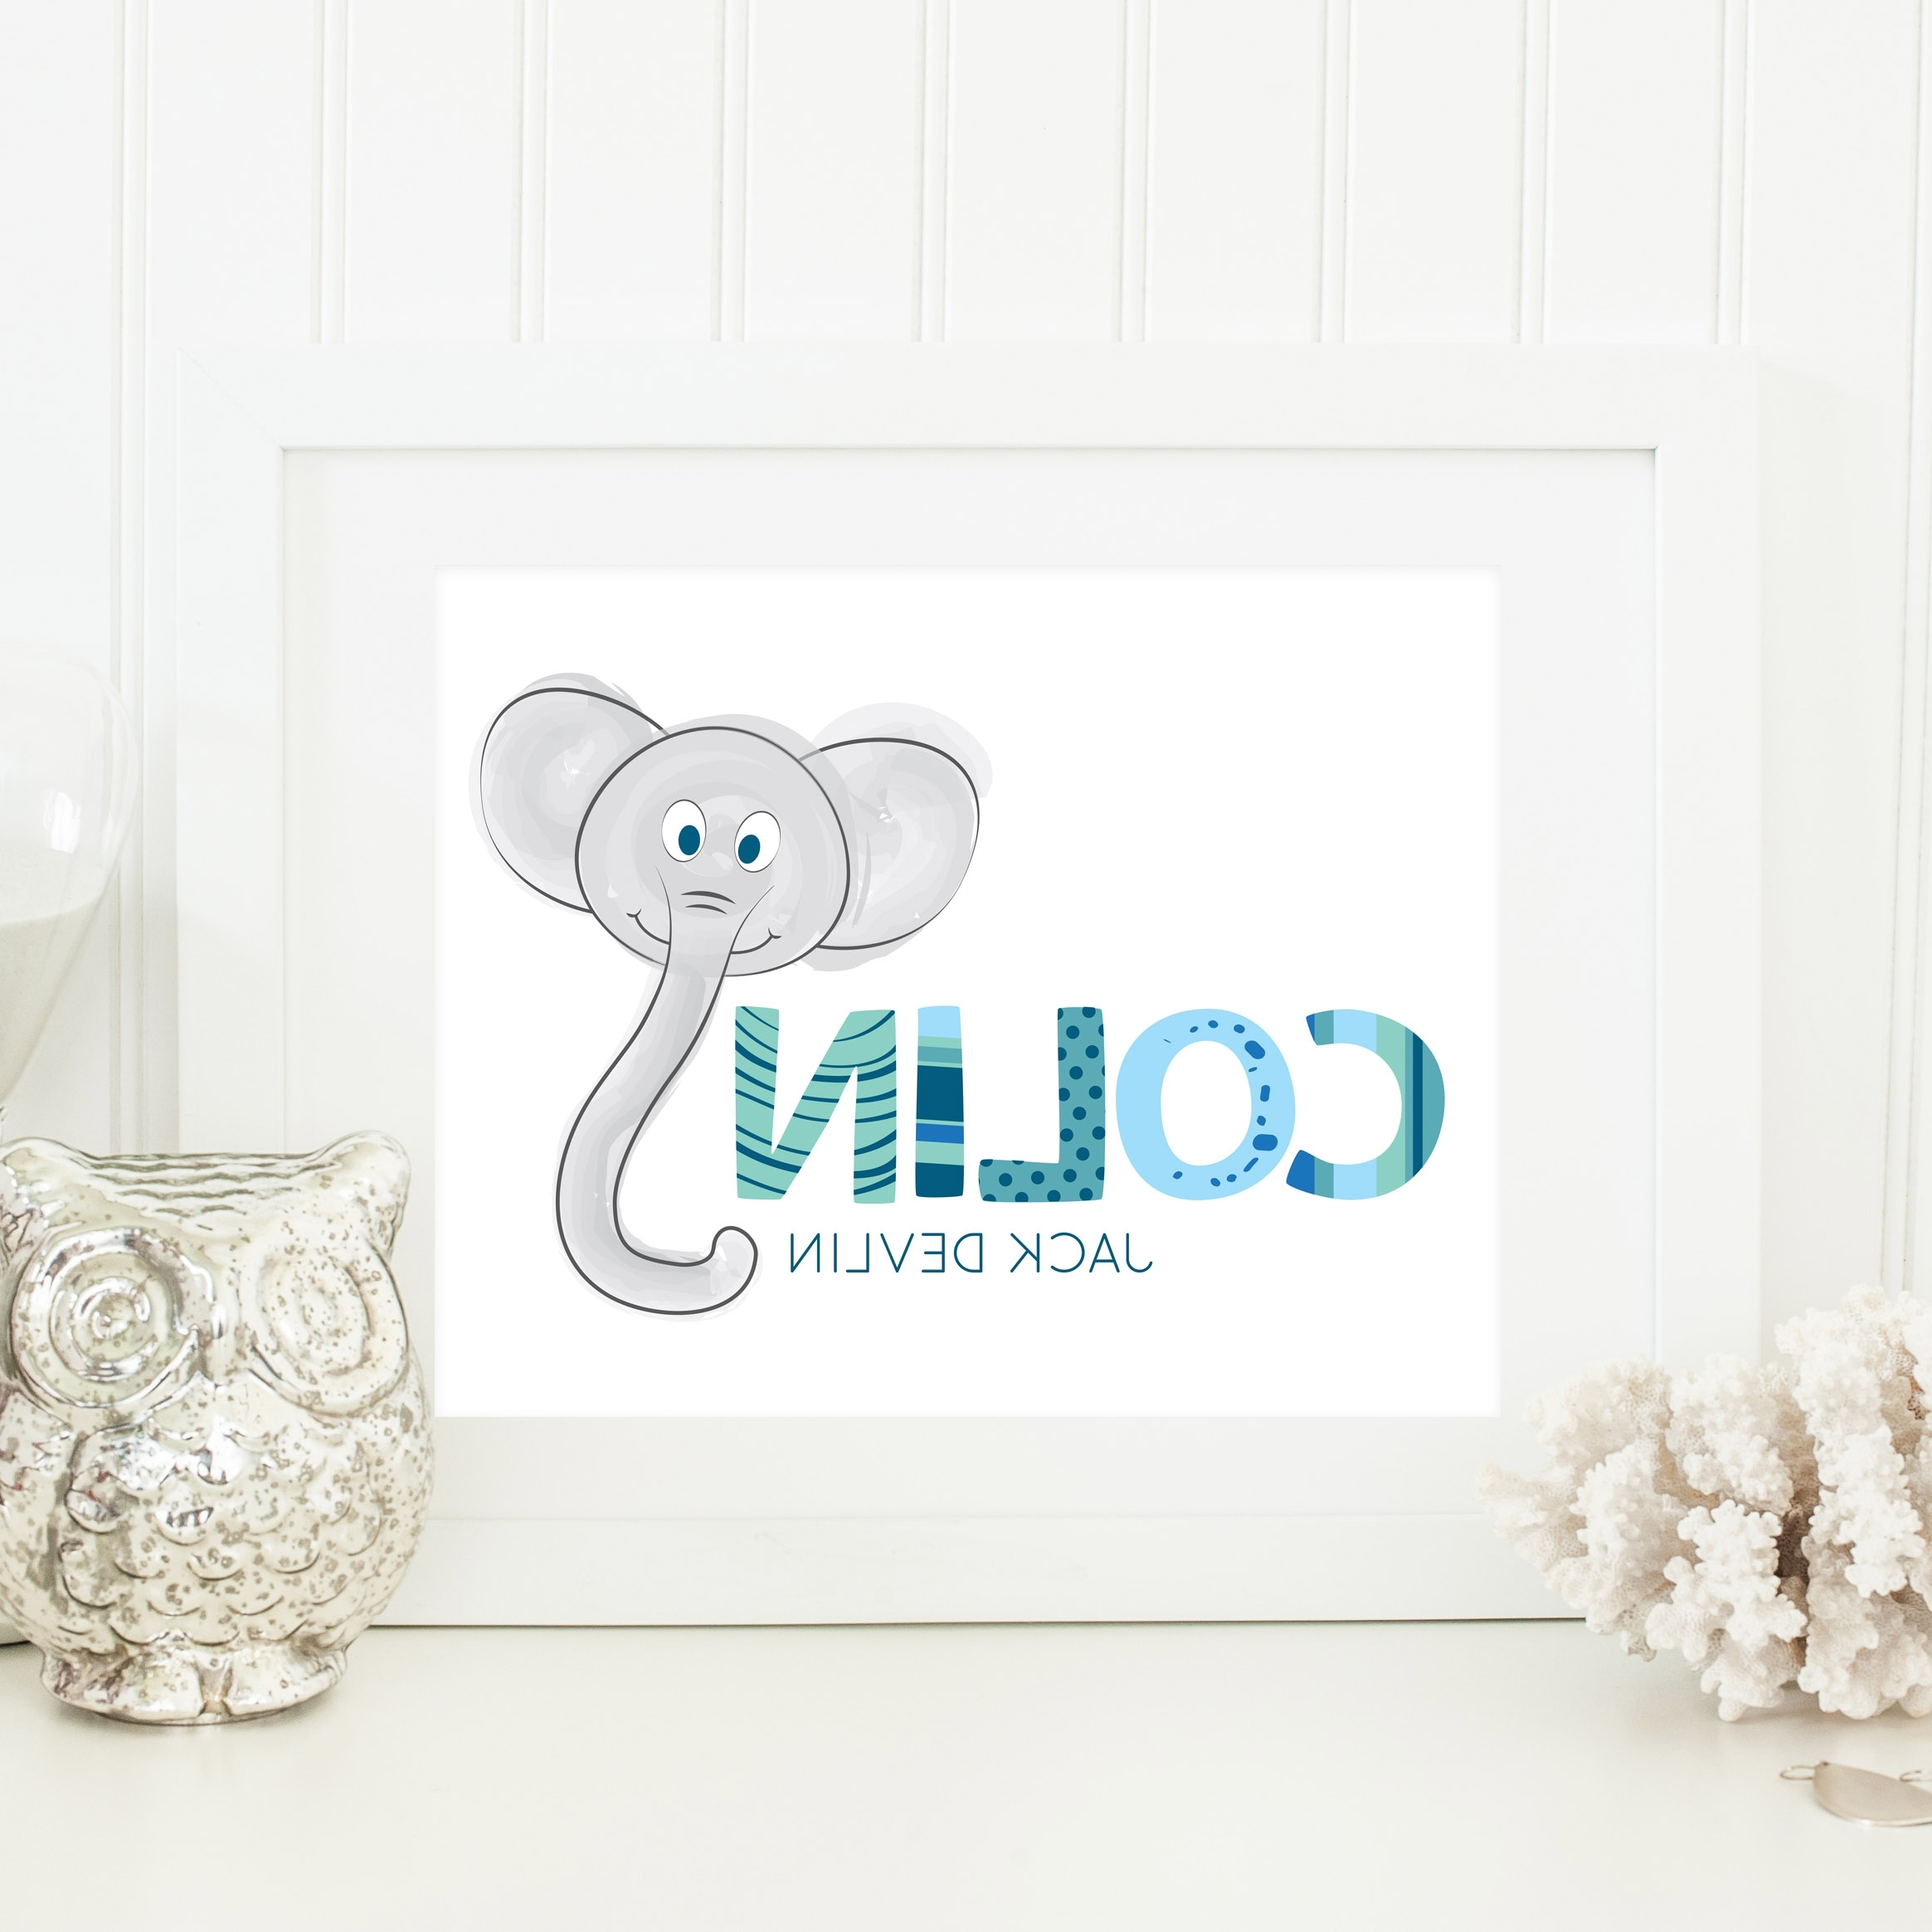 Widely Used Baby Name Wall Art Inside Baby Name Art (View 6 of 15)